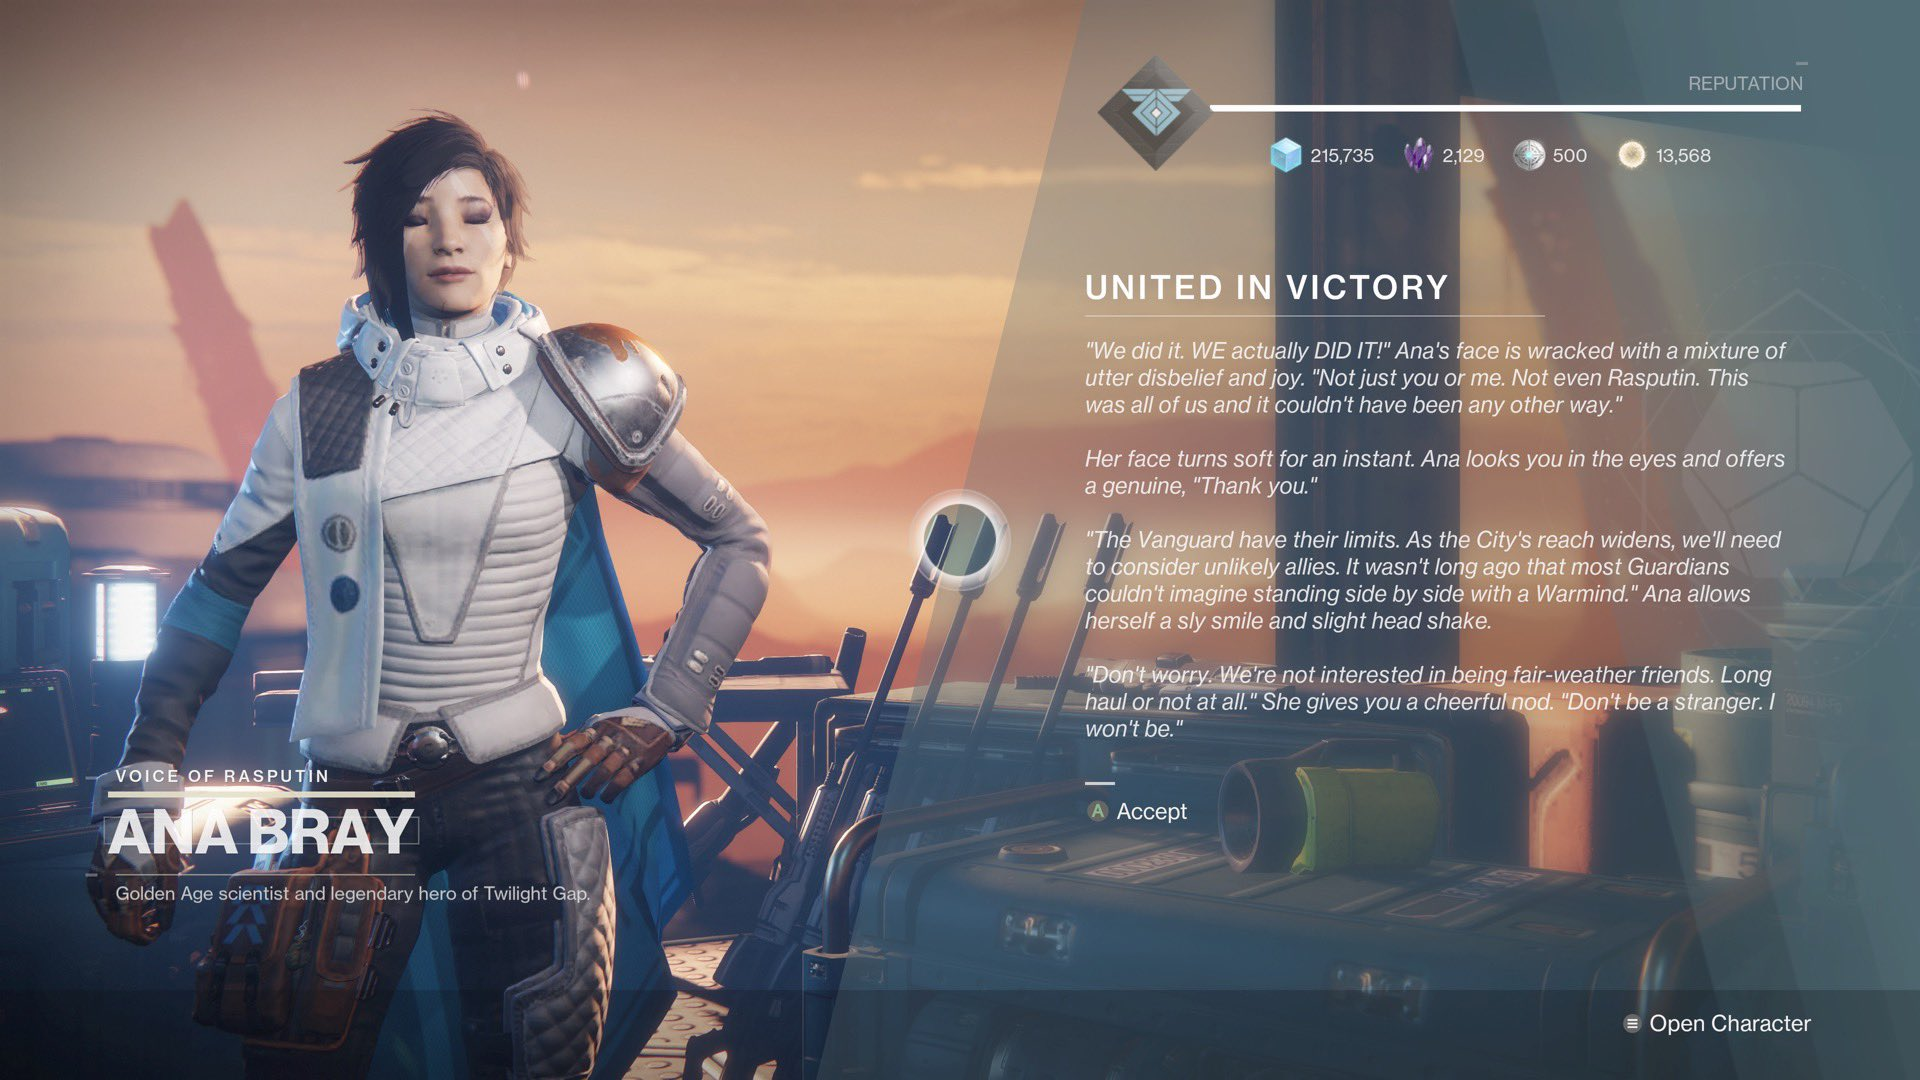 Destinytracker On Twitter New Dialogue From Ana Bray On Mars Ana bray was a guardian and to learn more about her, those secrets are hidden deep within the lore surrounding destiny. new dialogue from ana bray on mars